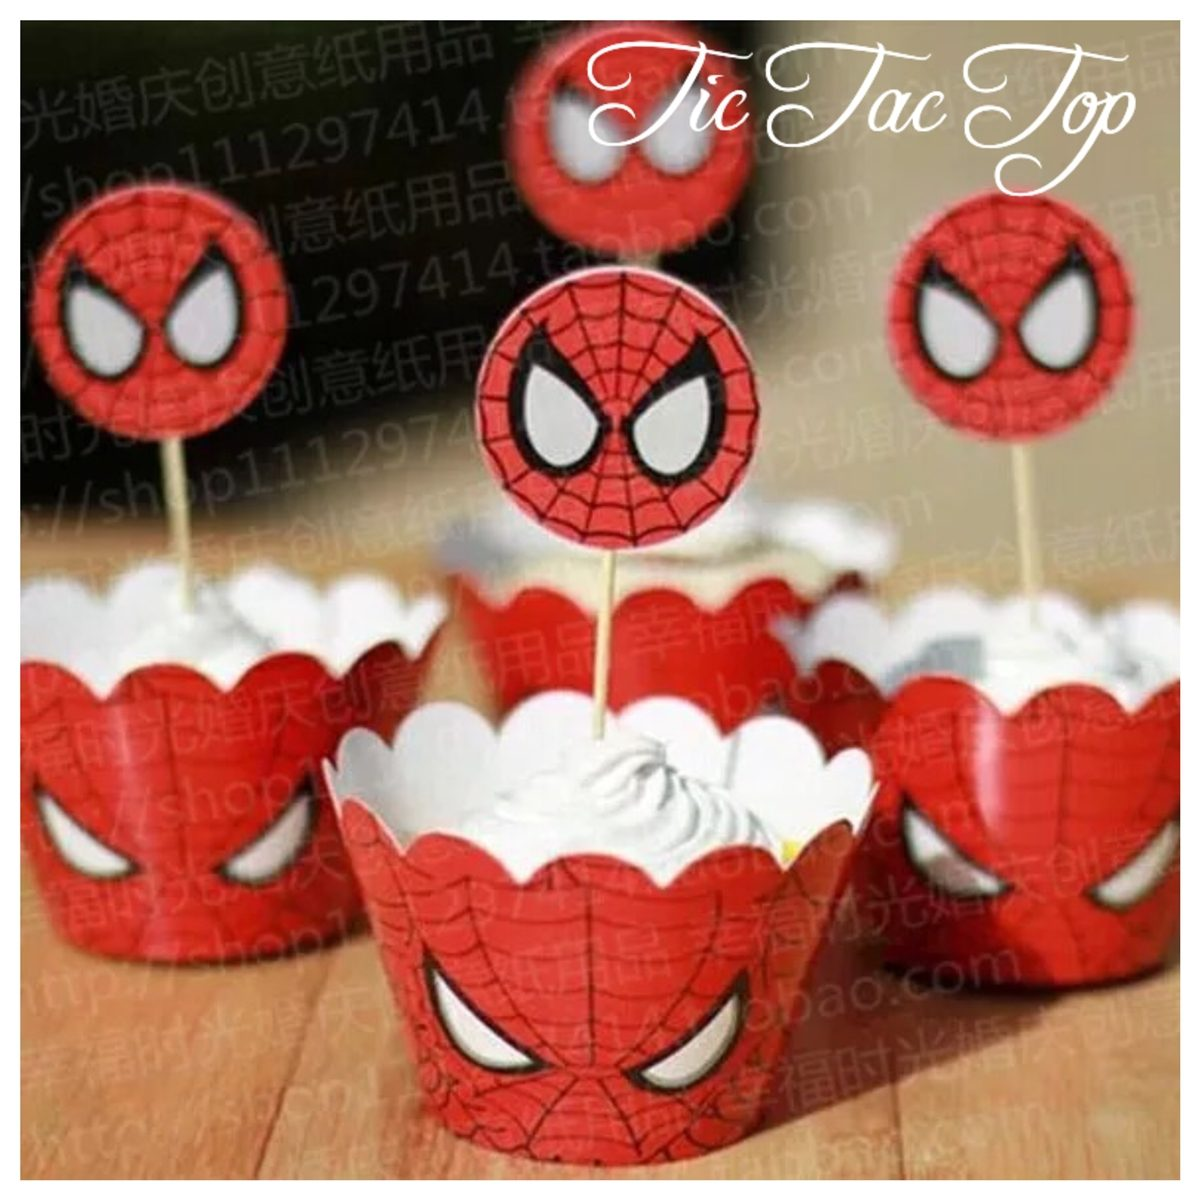 Spiderman Vs Black Spiderman Cupcake Wrappers + Toppers